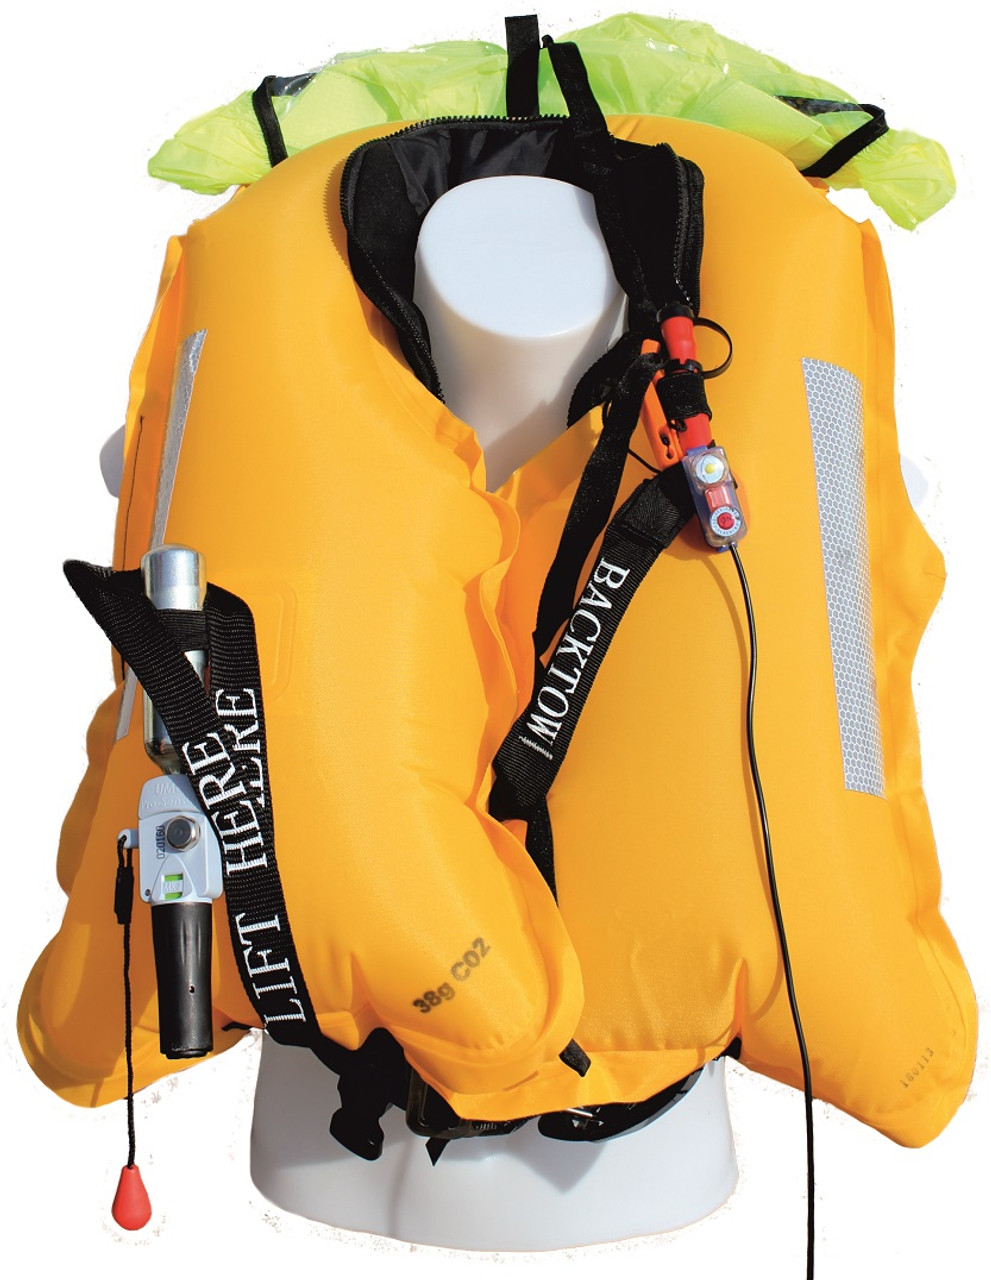 TeamO 170N BackTow Lifejacket and Harness - inflated